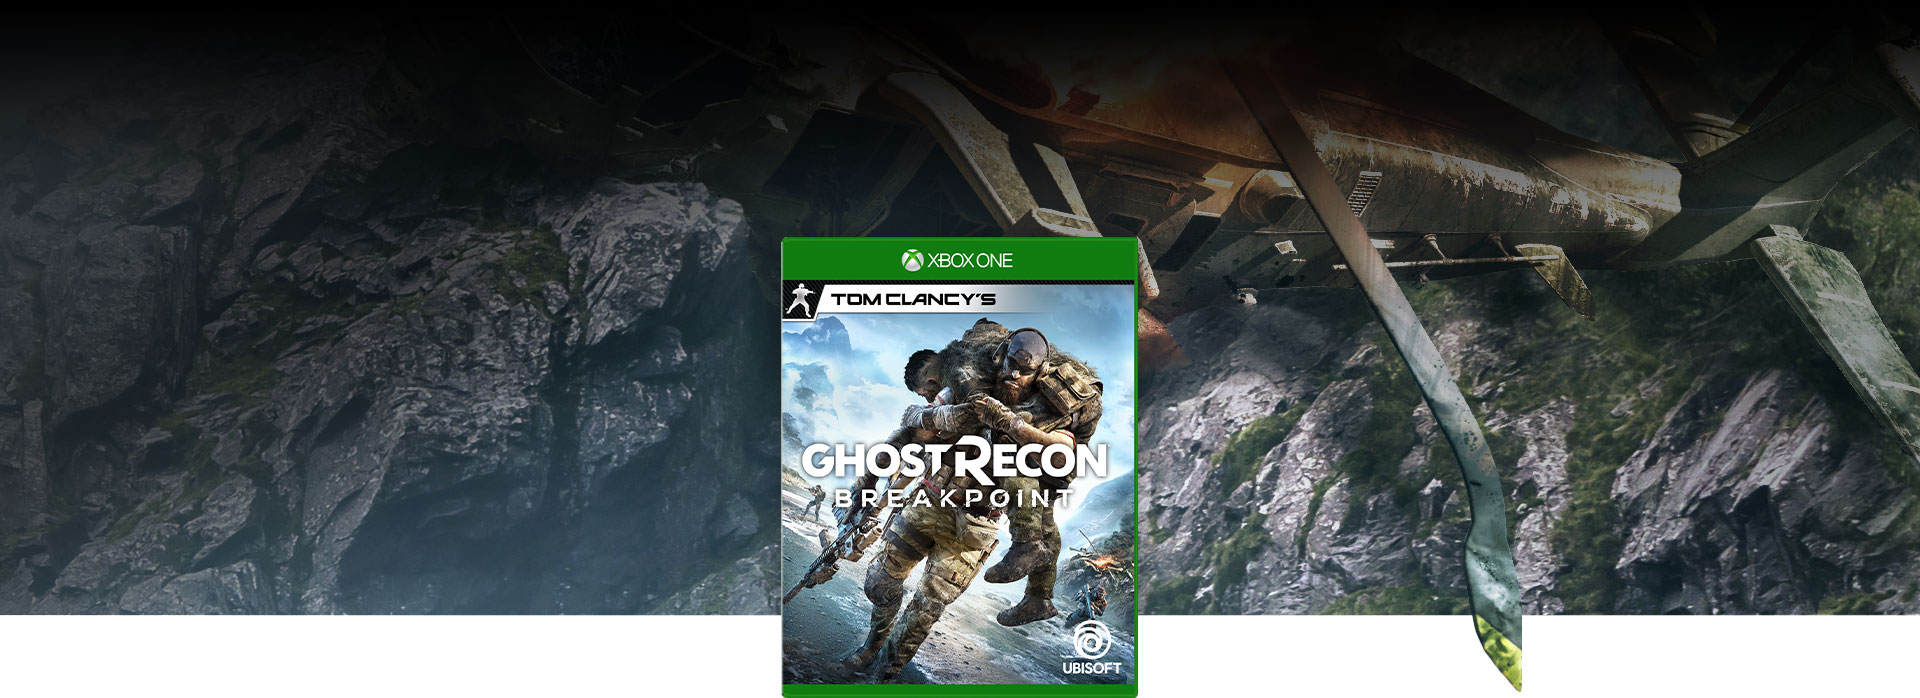 Tom Clancy's Ghost Recon Breakpoint boxshot, background of wrecked helicopter in mountains